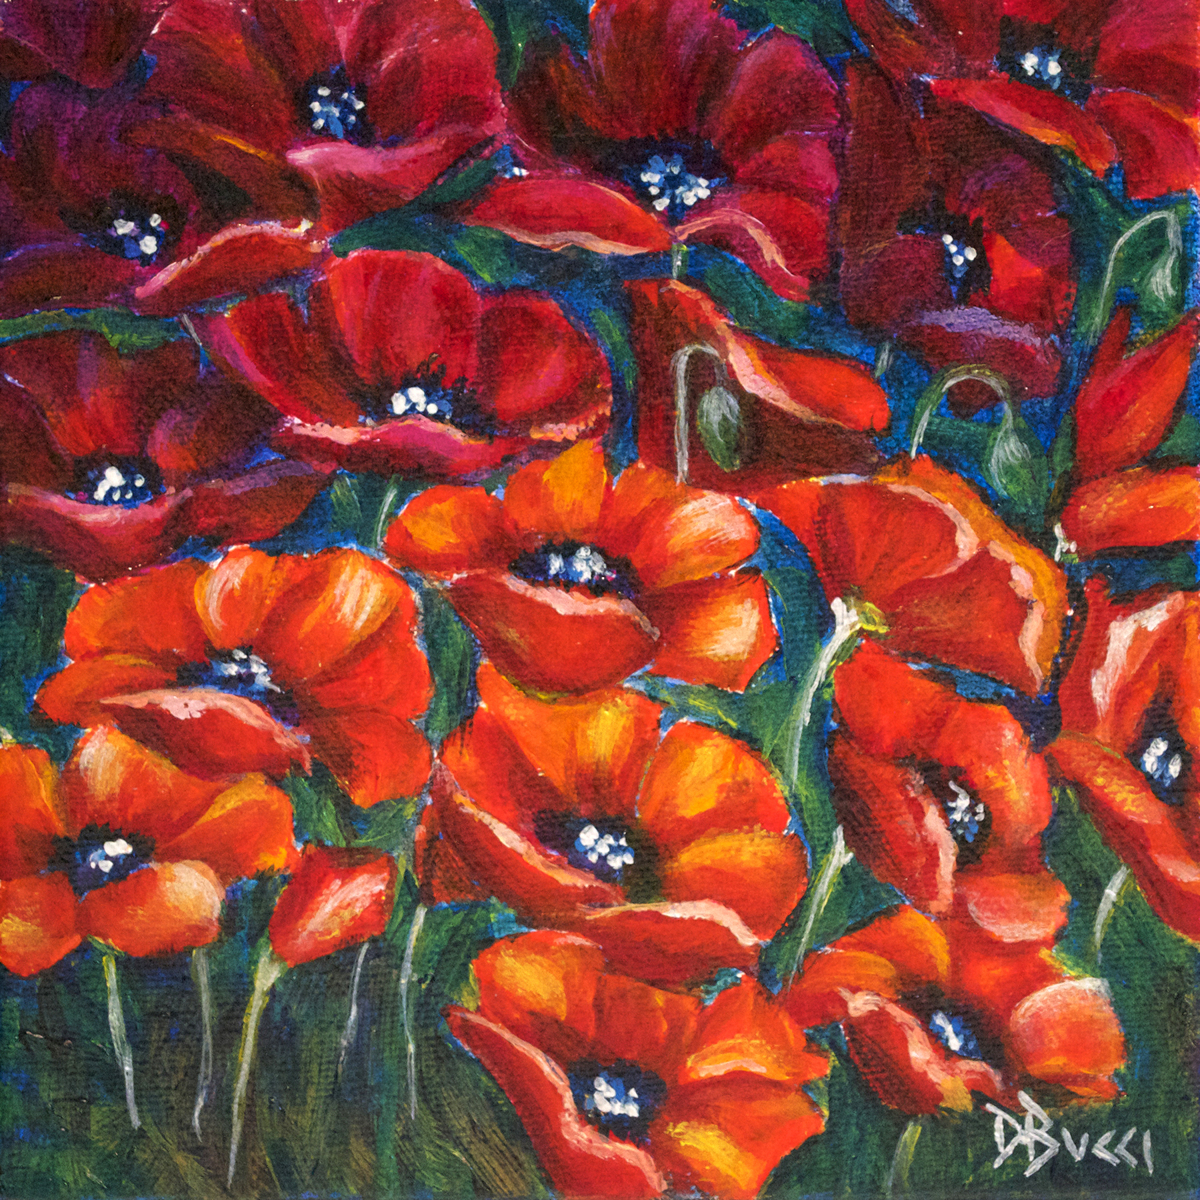 """Team Poppy - """"Pocketbook"""" Painting (large view)"""